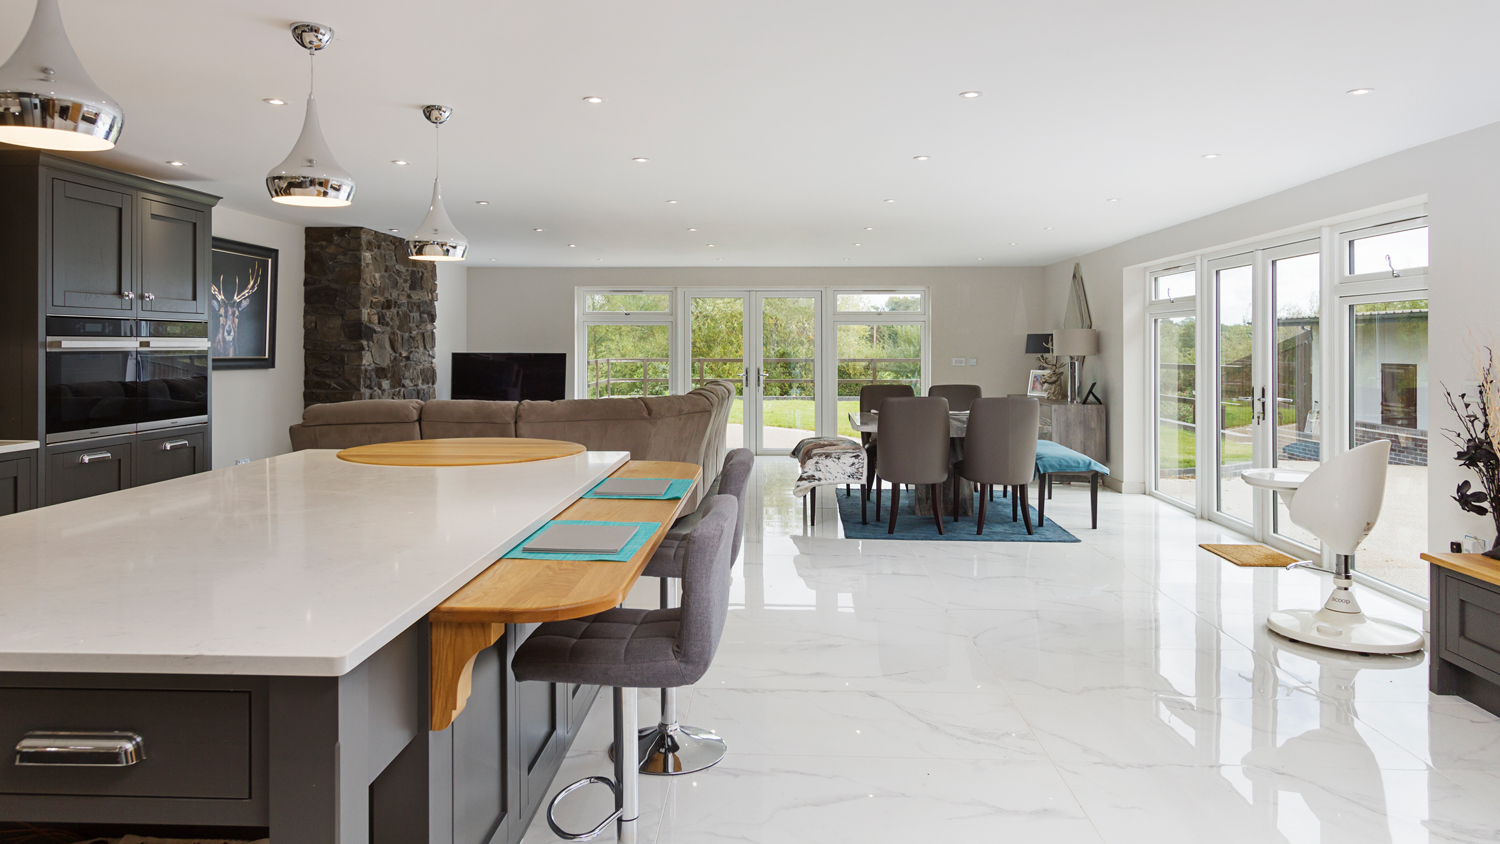 Croft Architecture Create a Spacious extension and renovation for family life